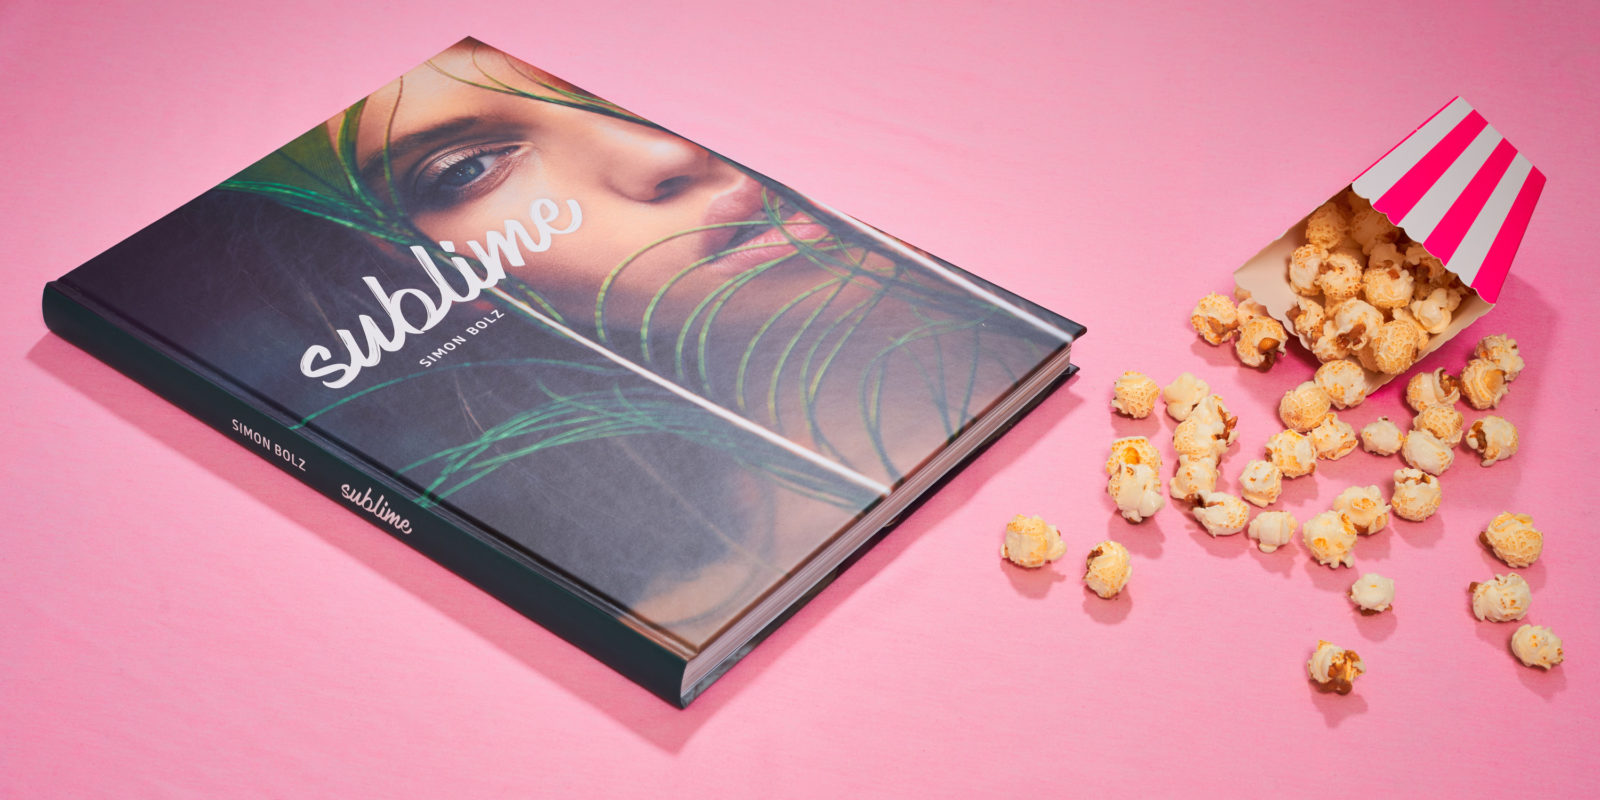 sublime-simon-bolz-photobooks_cover